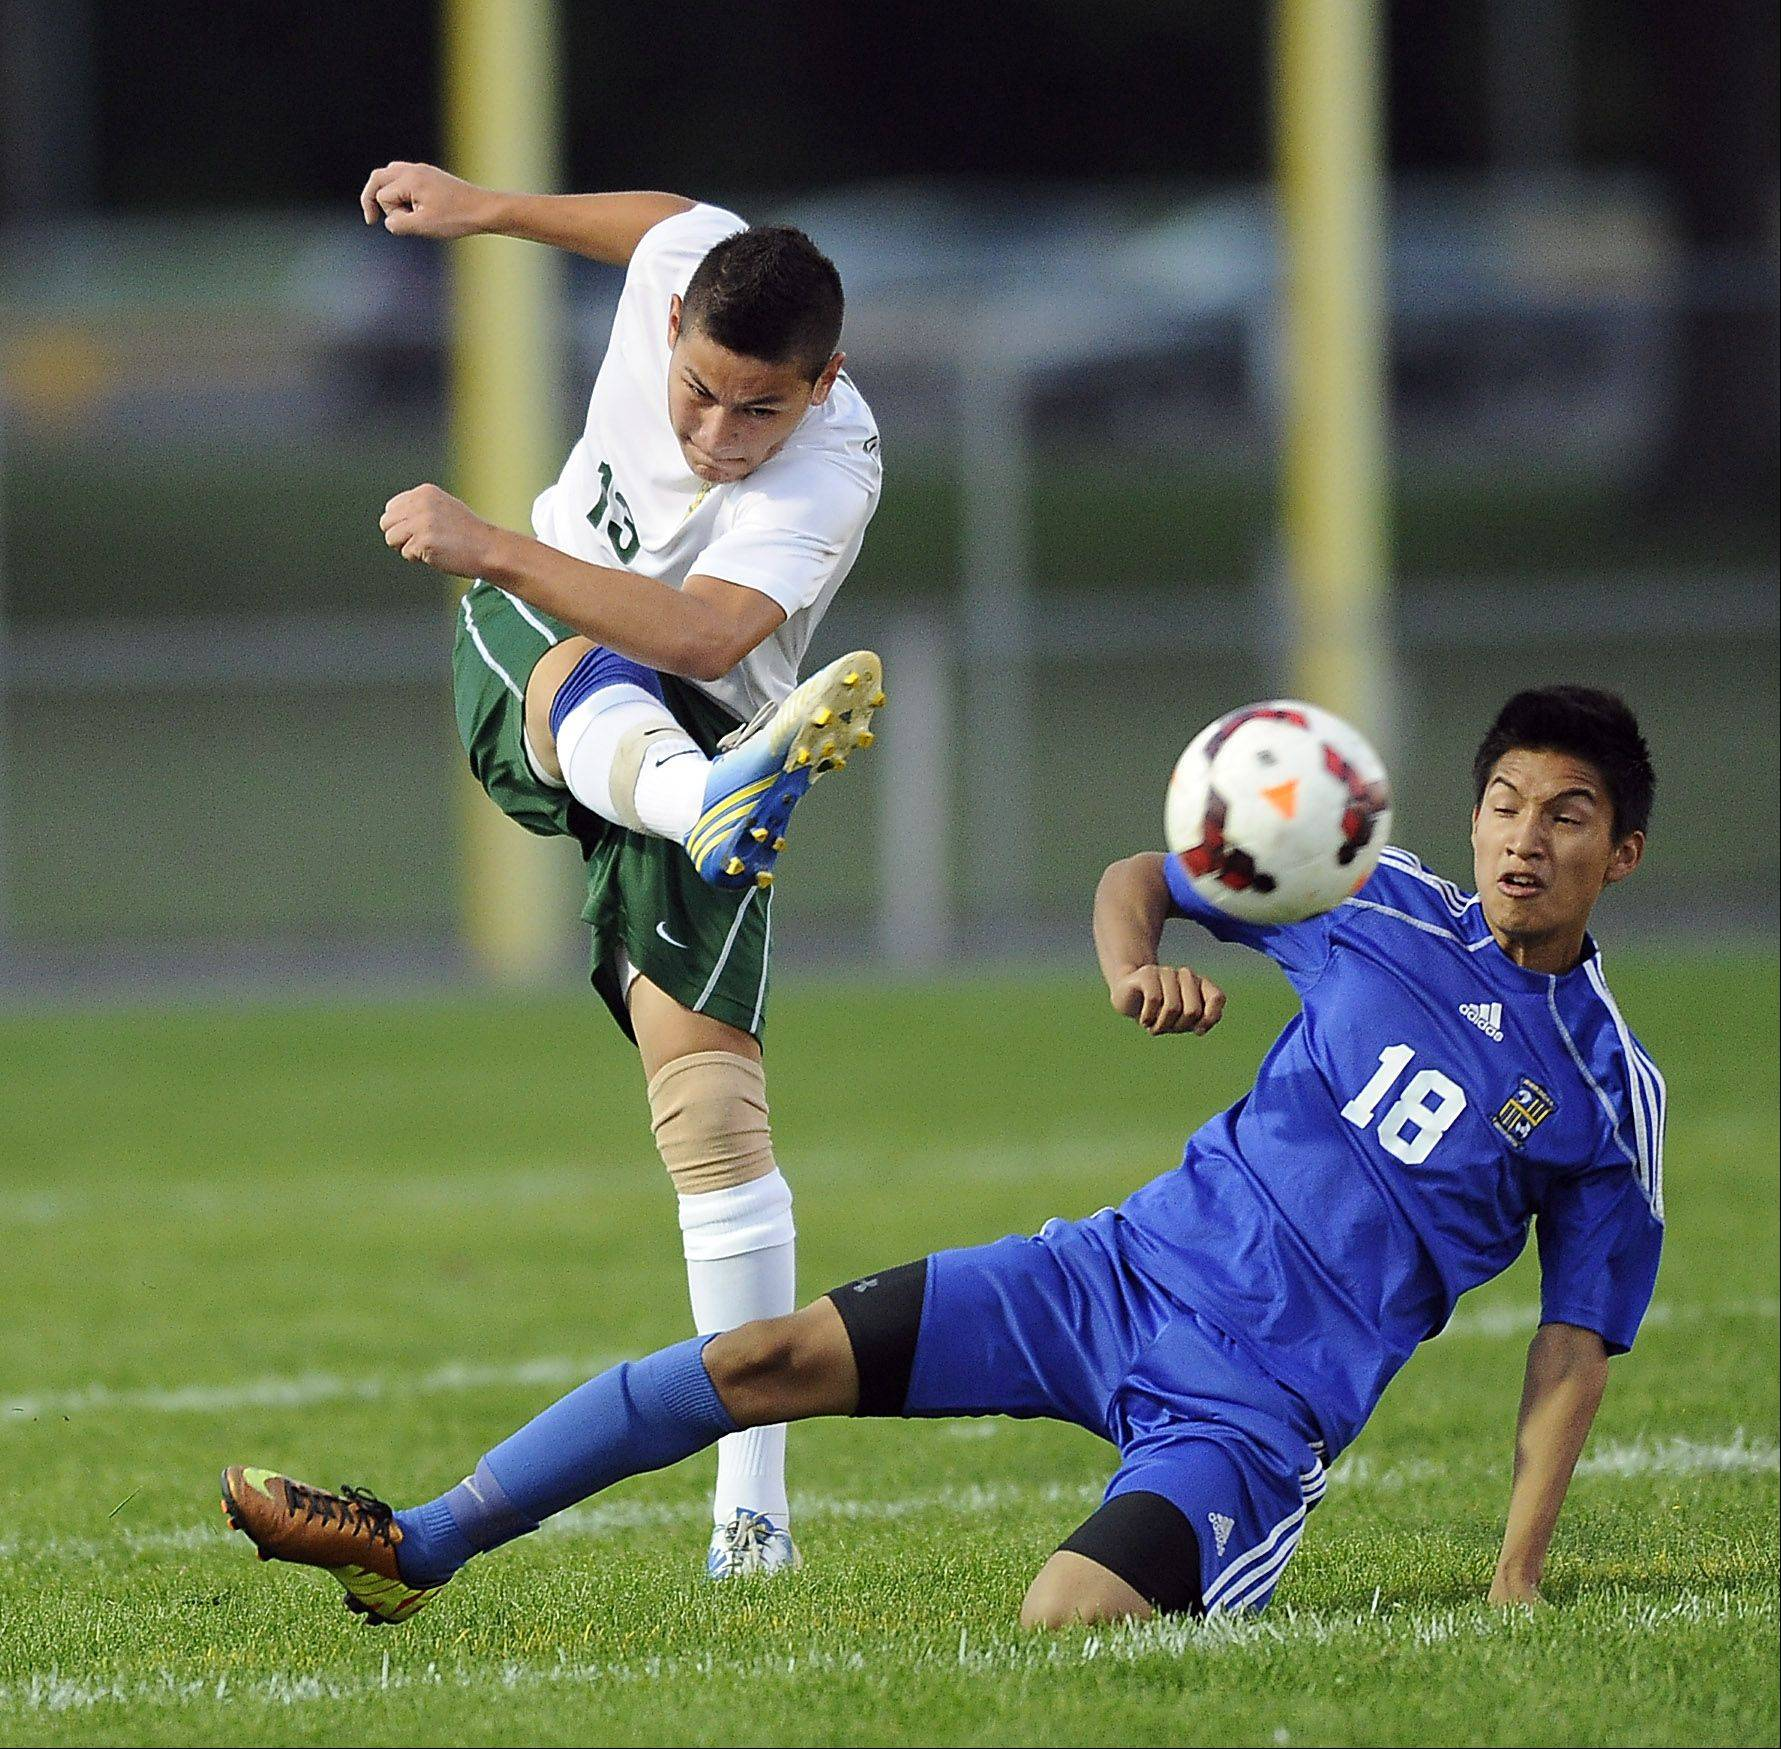 Elk Grove's Arnold Aguilar and Wheeling's Elias Cisneros battle for the ball during Thursday's soccer game in Elk Grove Village.